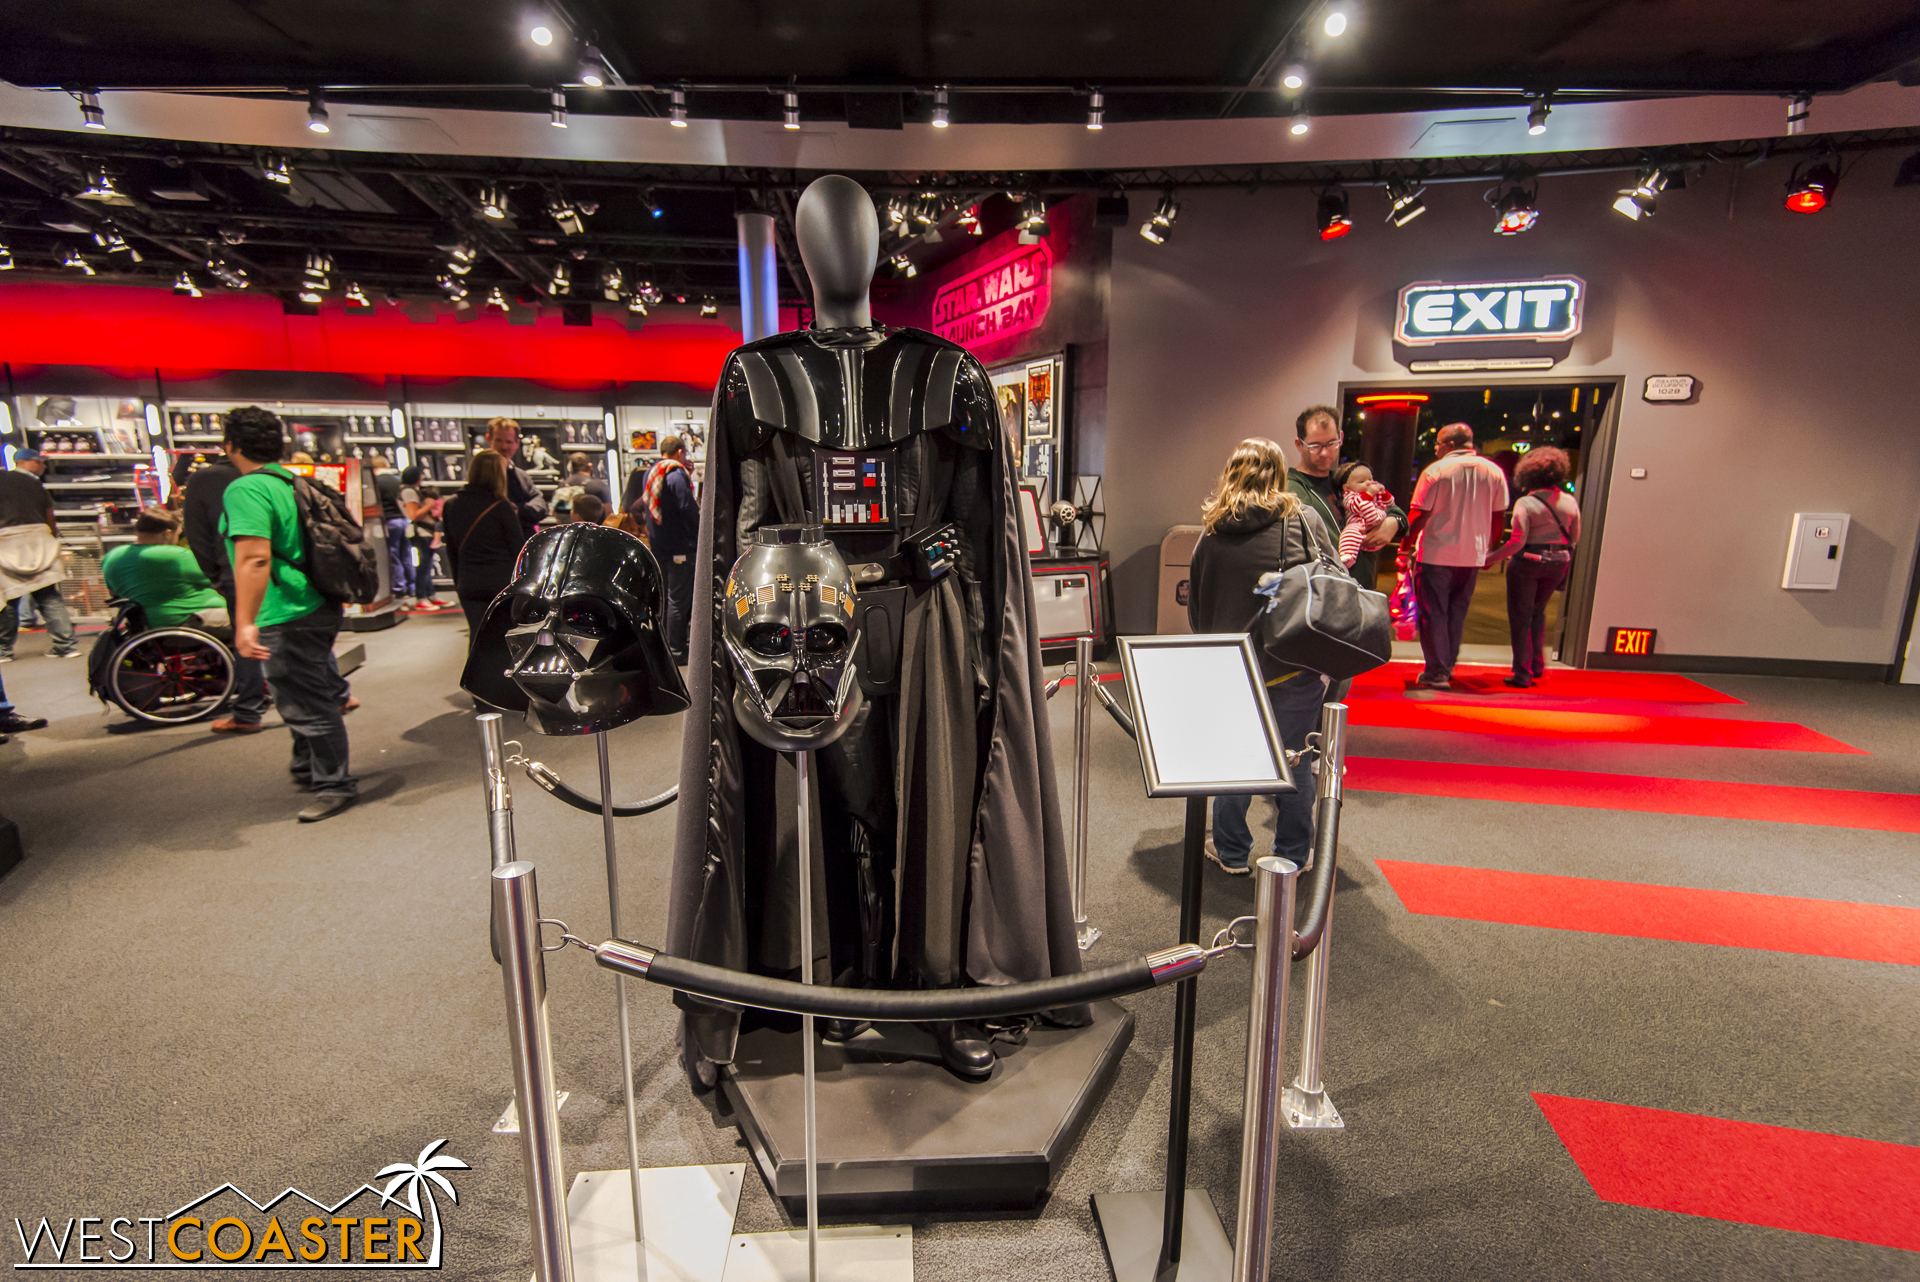 Full sized Darth Vader suit is awesome too.